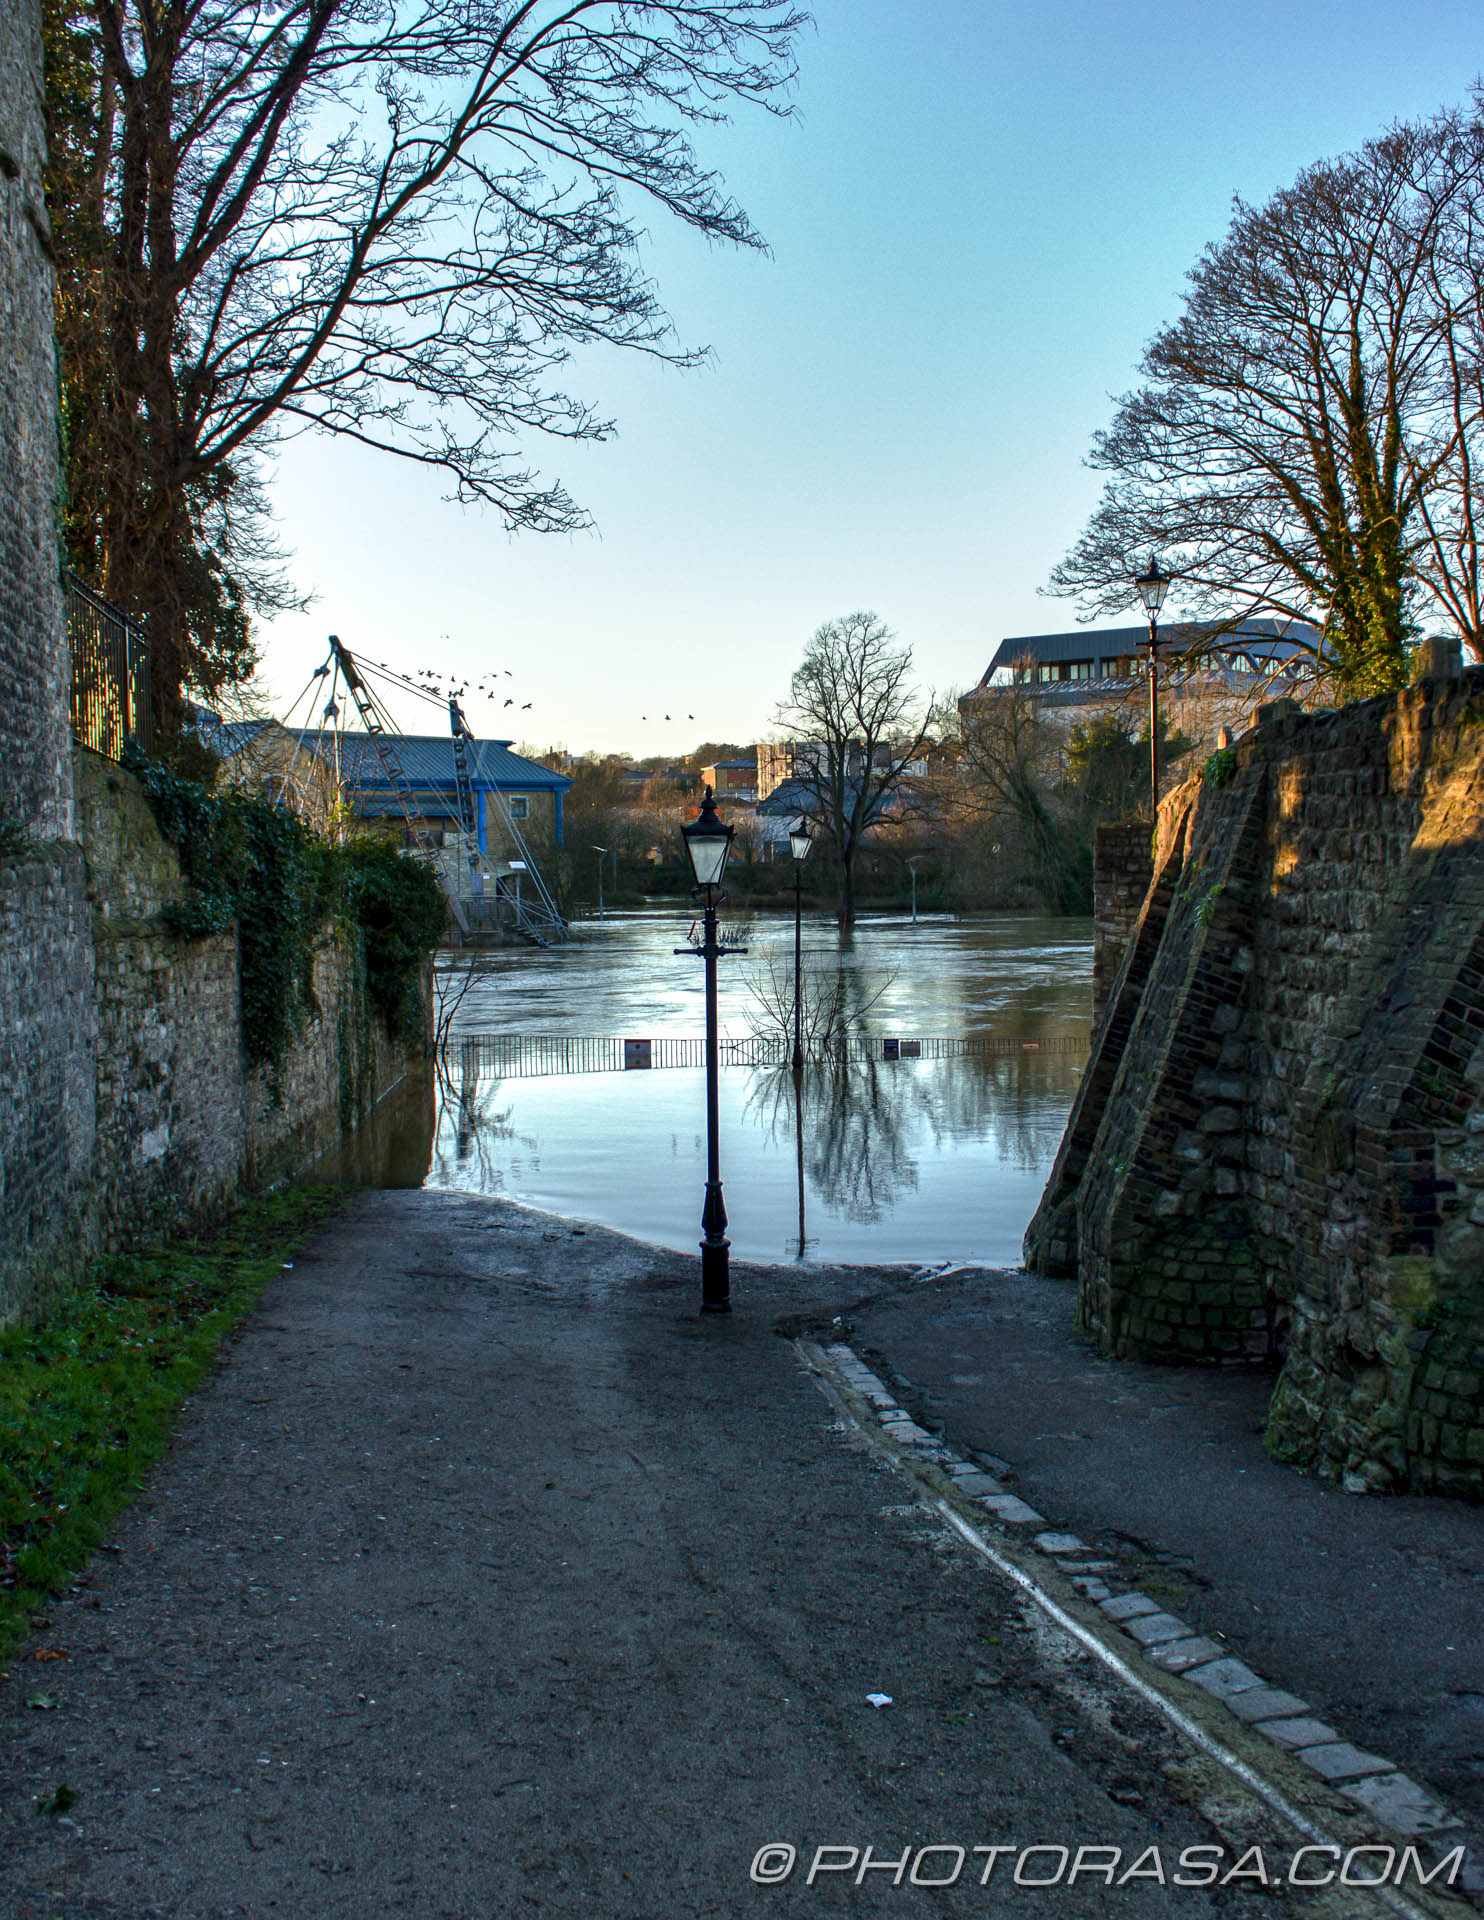 http://photorasa.com/wet-xmas-maidstone-river-medway-floods-town-centre/down-the-dirt-path-to-the-footbridge/